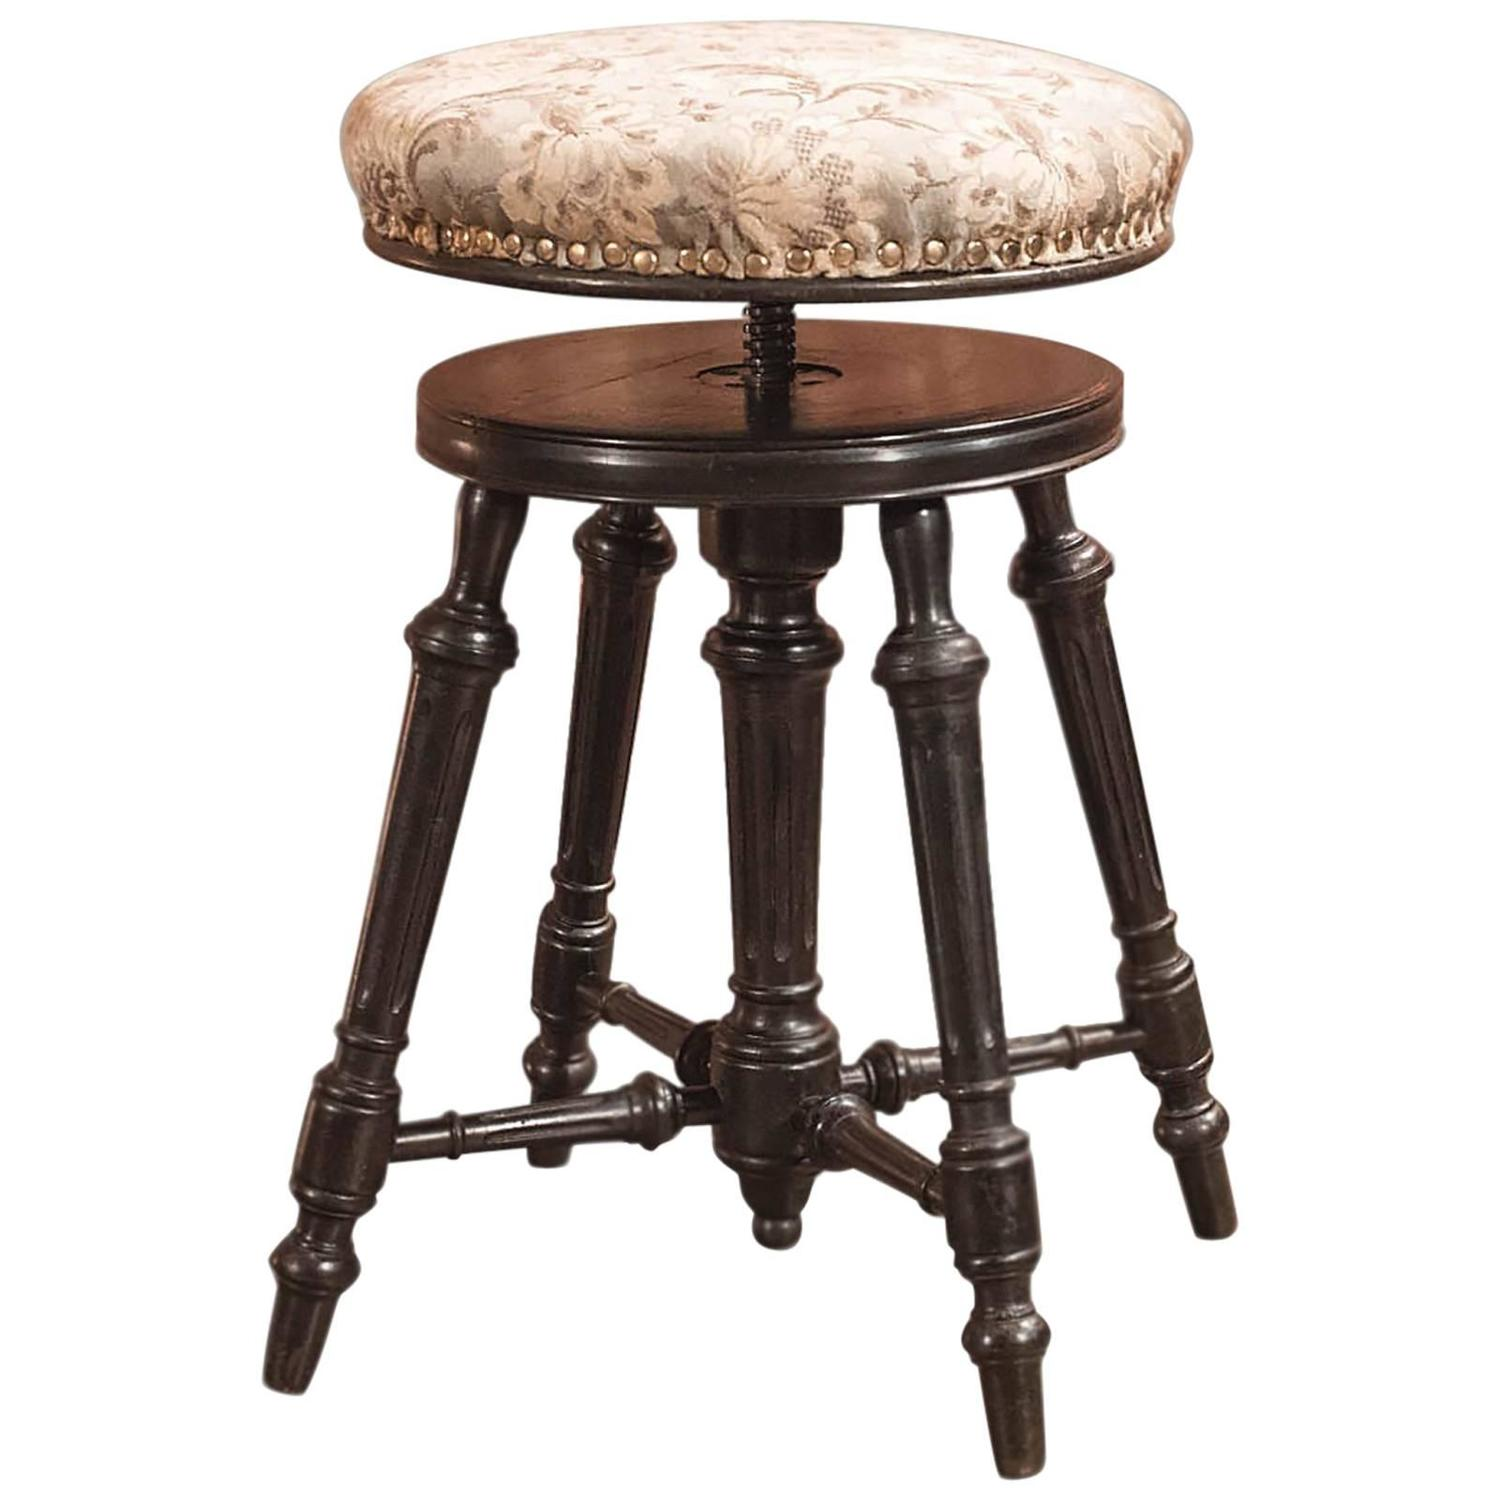 19th Century Antique Piano Stool Aesthetic Period circa 1880 For